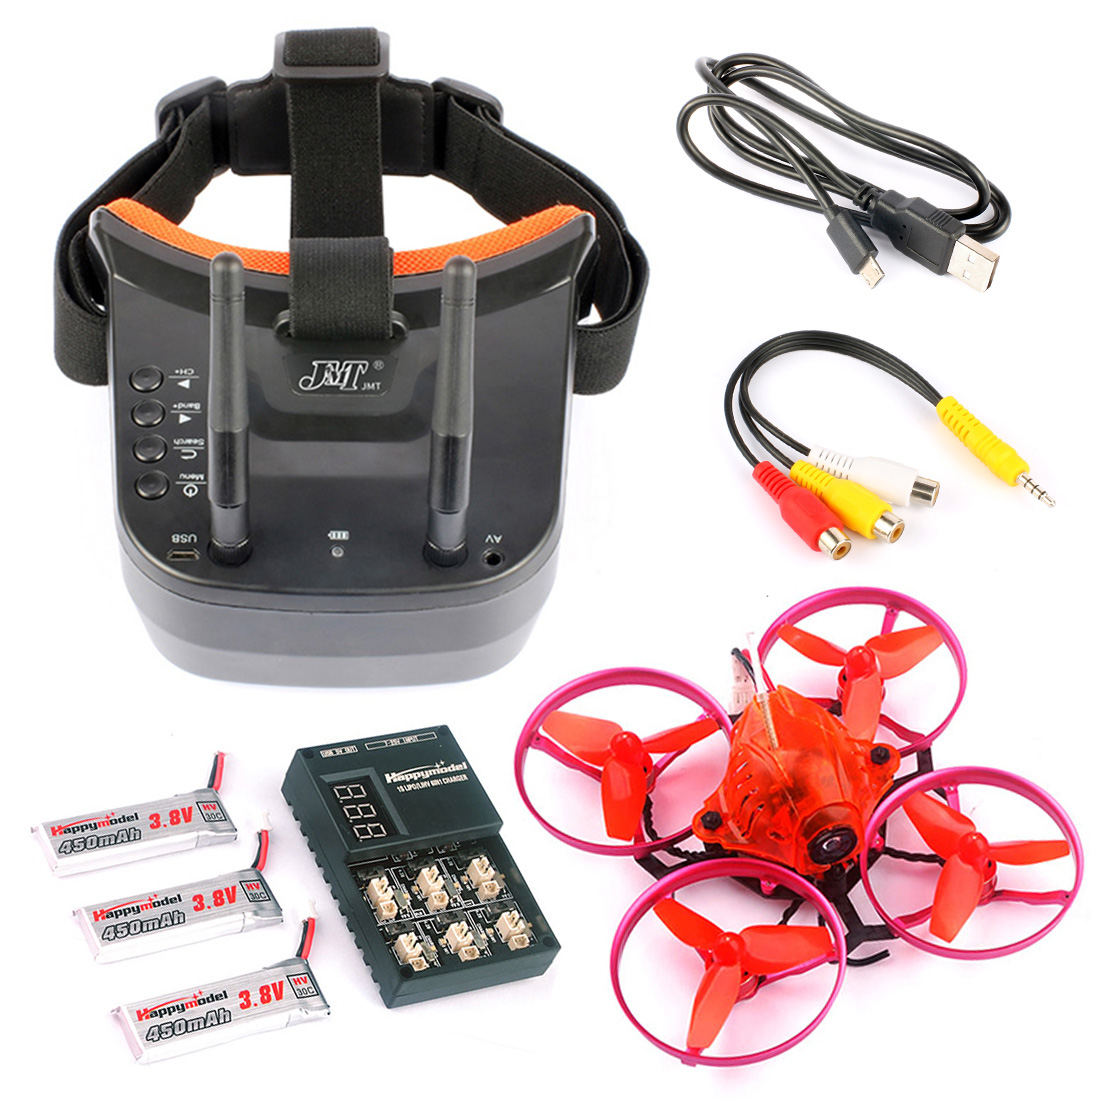 Snapper7 Brushless Micro 75mm 5 8G FPV Racer Drone 2 4G 6CH RC Quadcopter RTF 700TVL